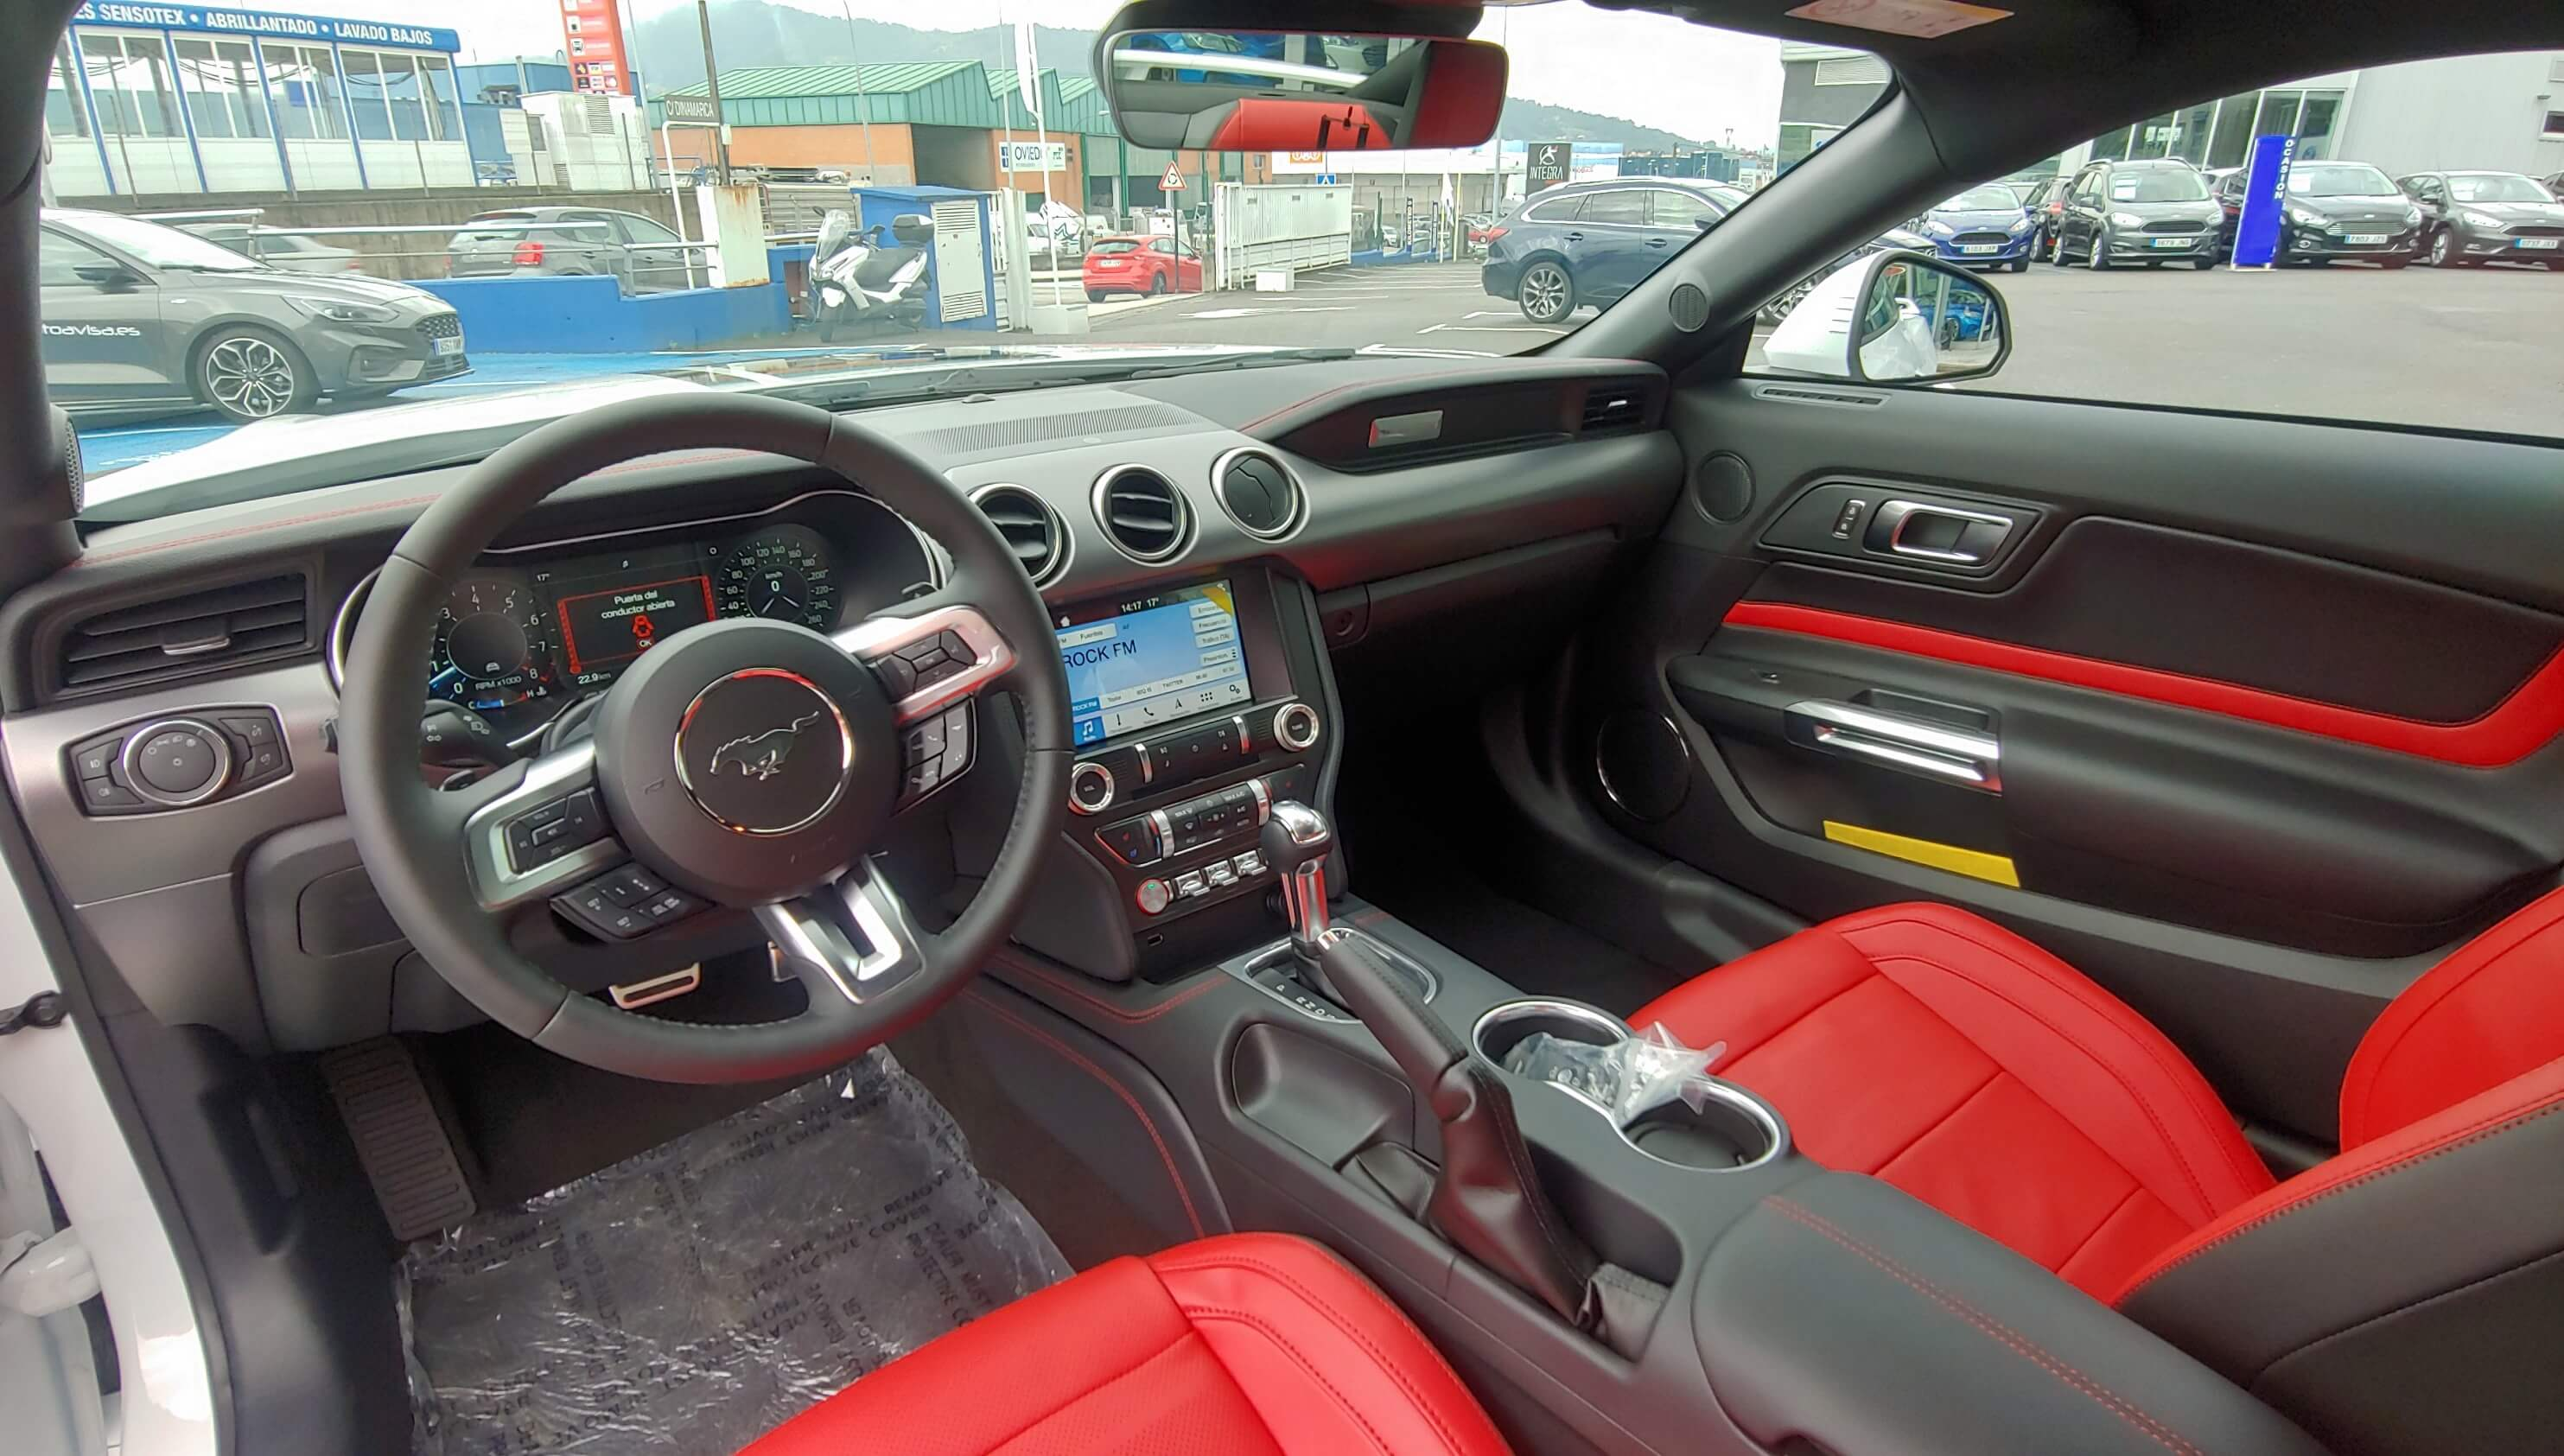 Ford Mustang GT Interior